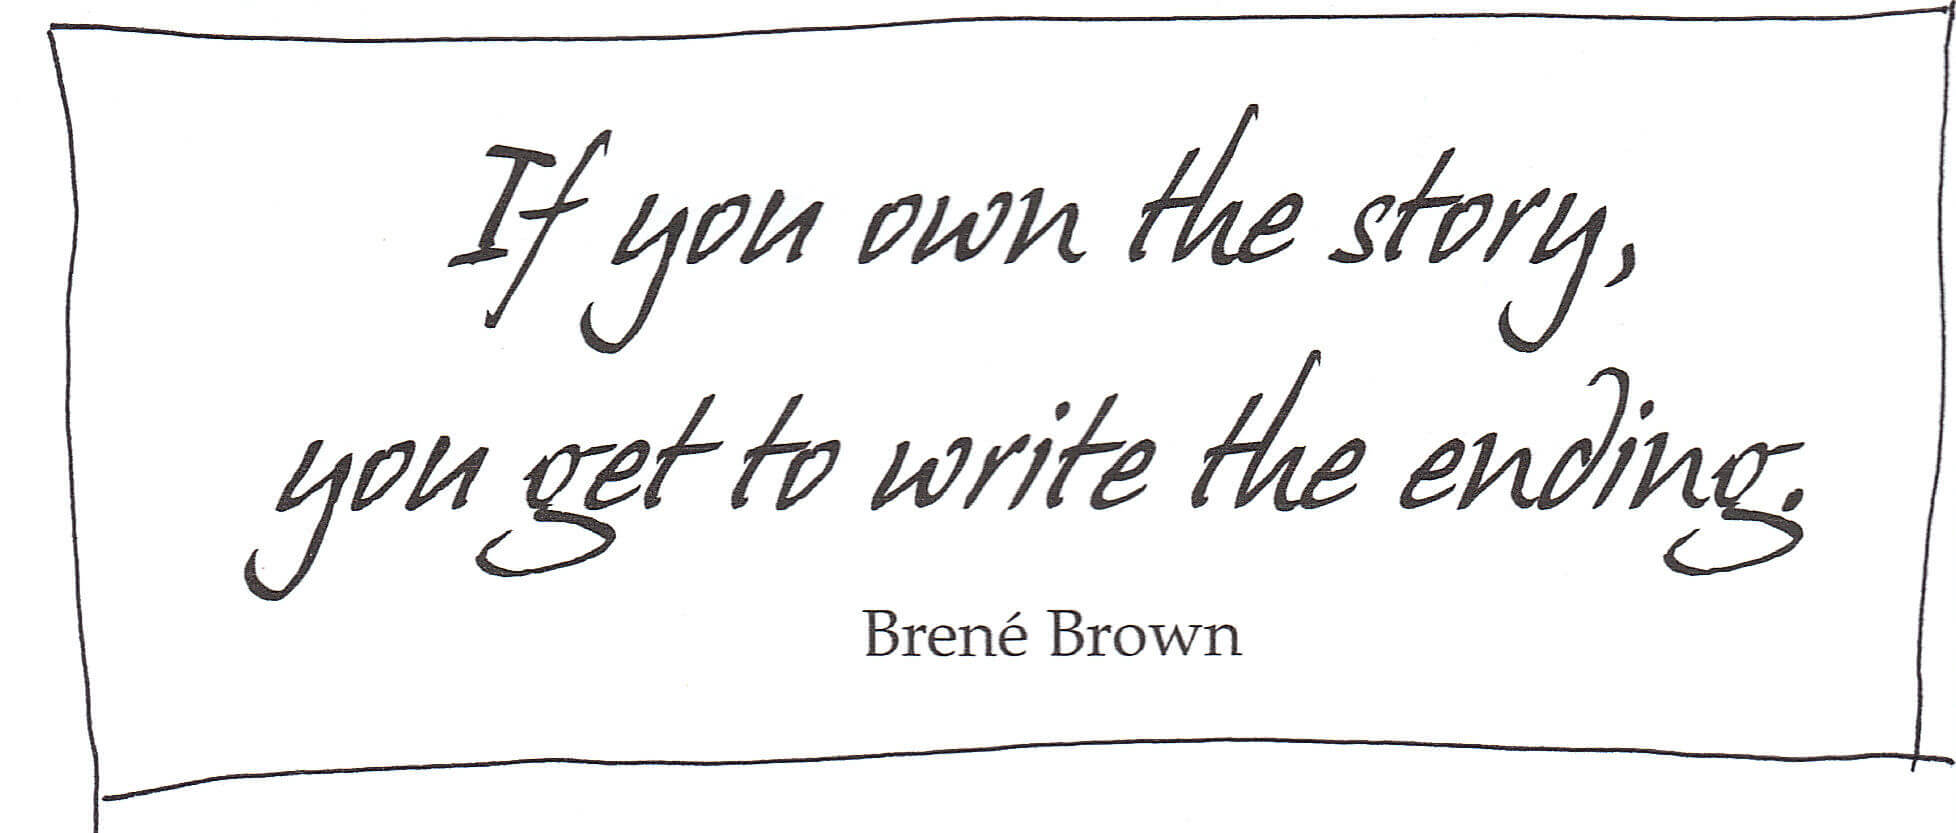 brene brown quote jpeg